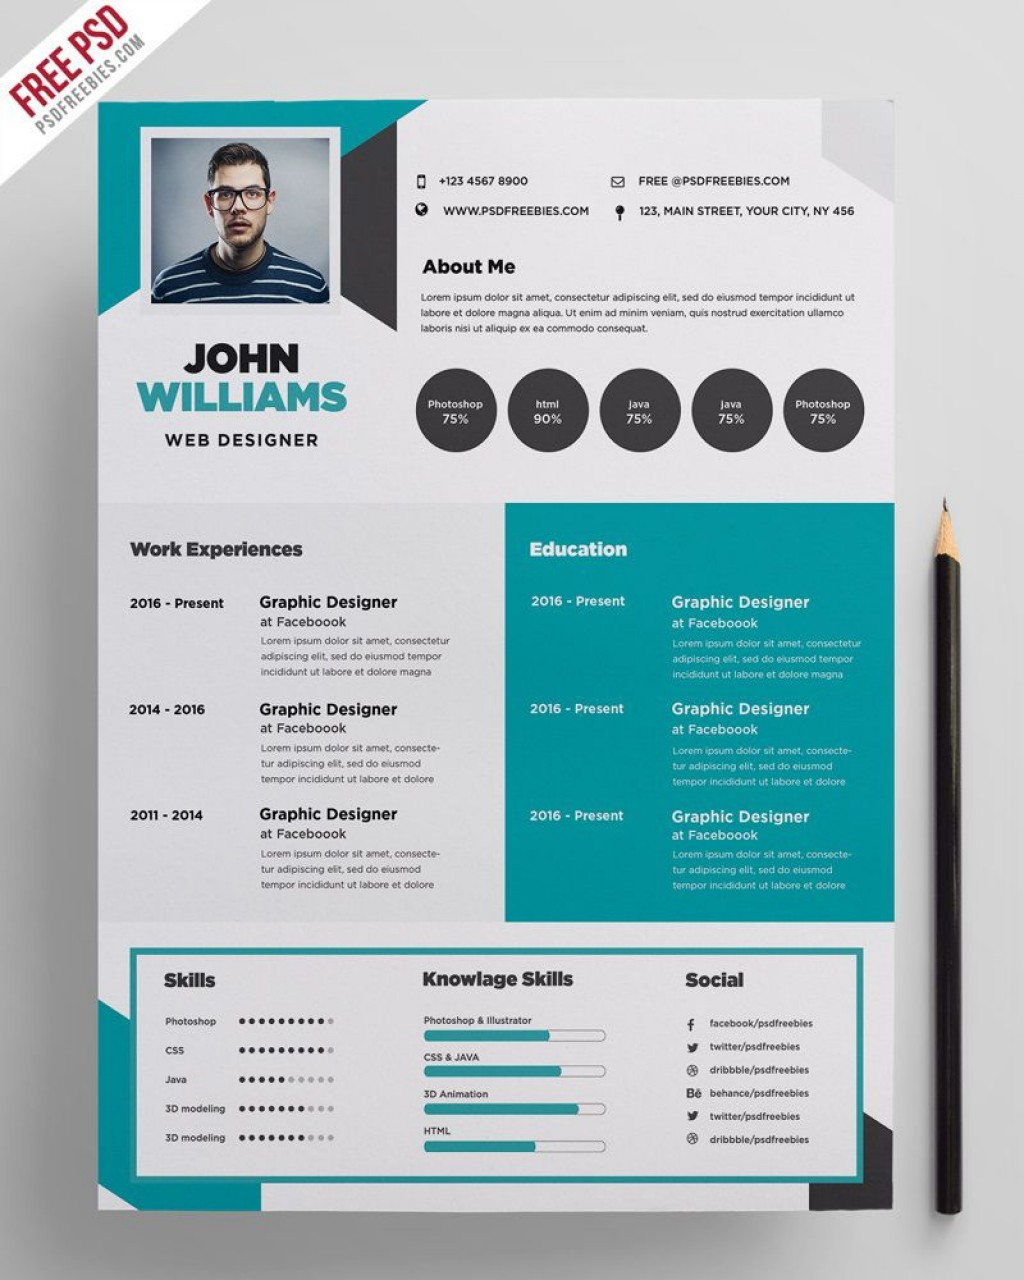 004 Formidable Free Psd Resume Template Highest Quality  Templates Attractive Download Creative (psd Id) Curriculum VitaeLarge